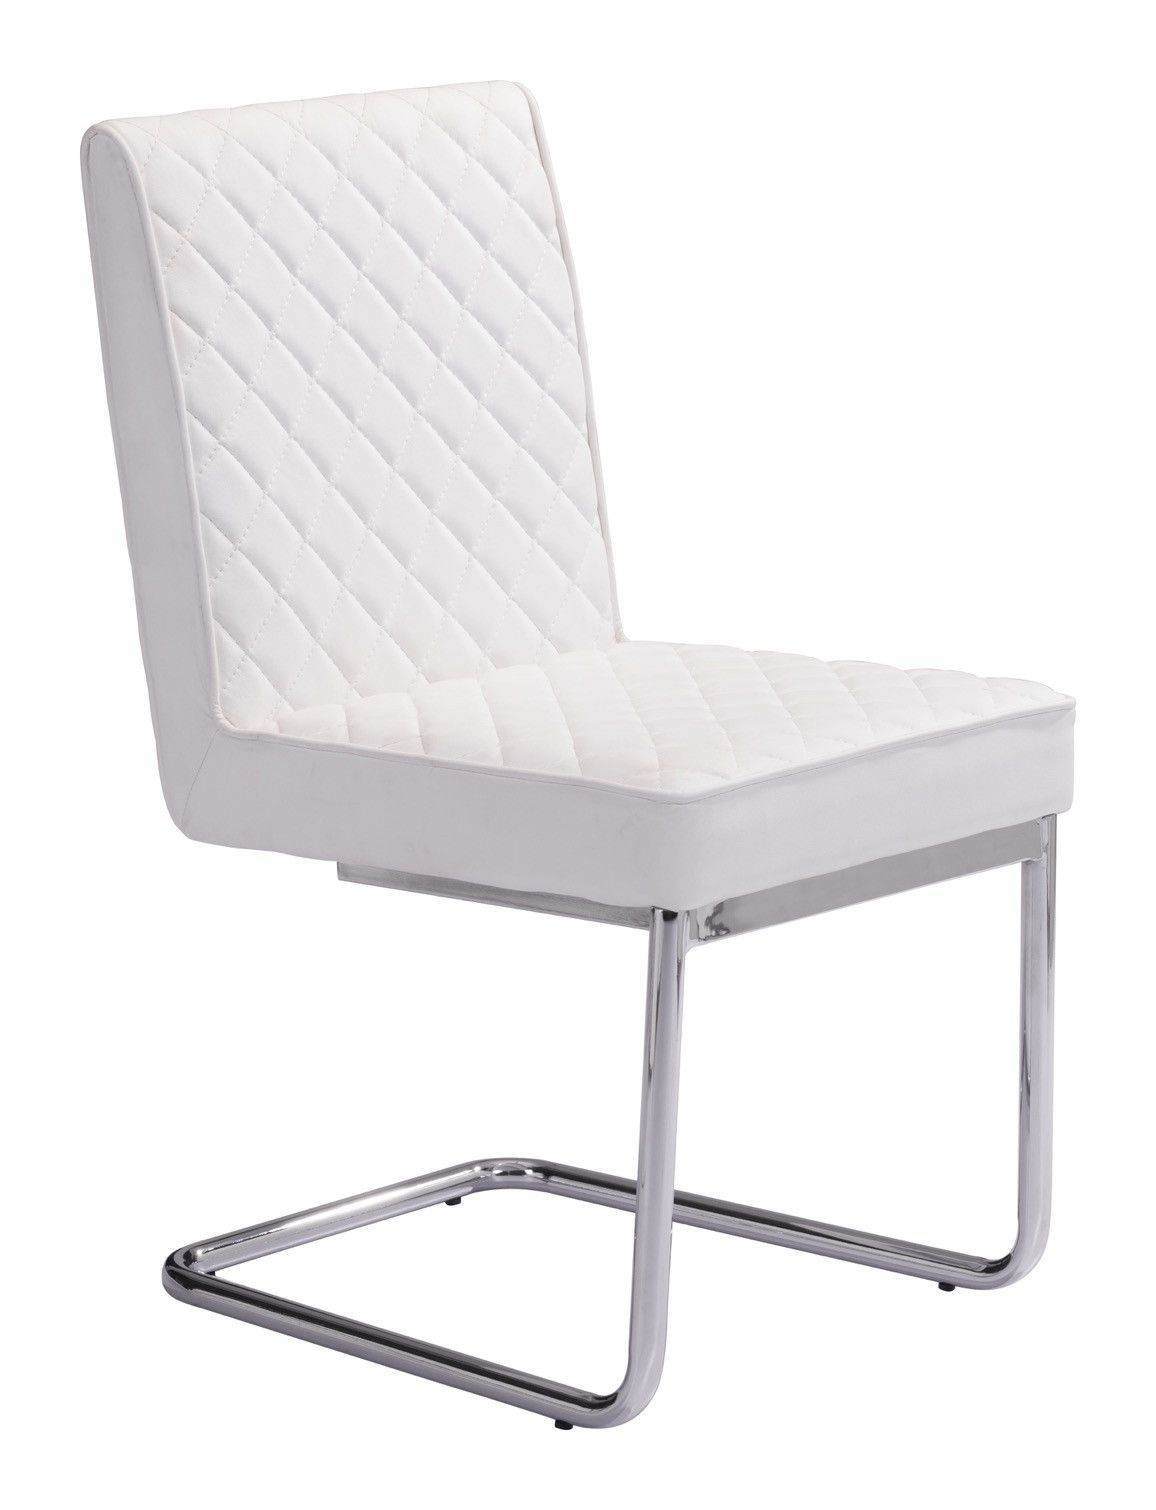 Recent Quilt Armless Dining Chair In Quilted White Leatherette With Chrome Regarding Quilted Black Dining Chairs (View 15 of 20)